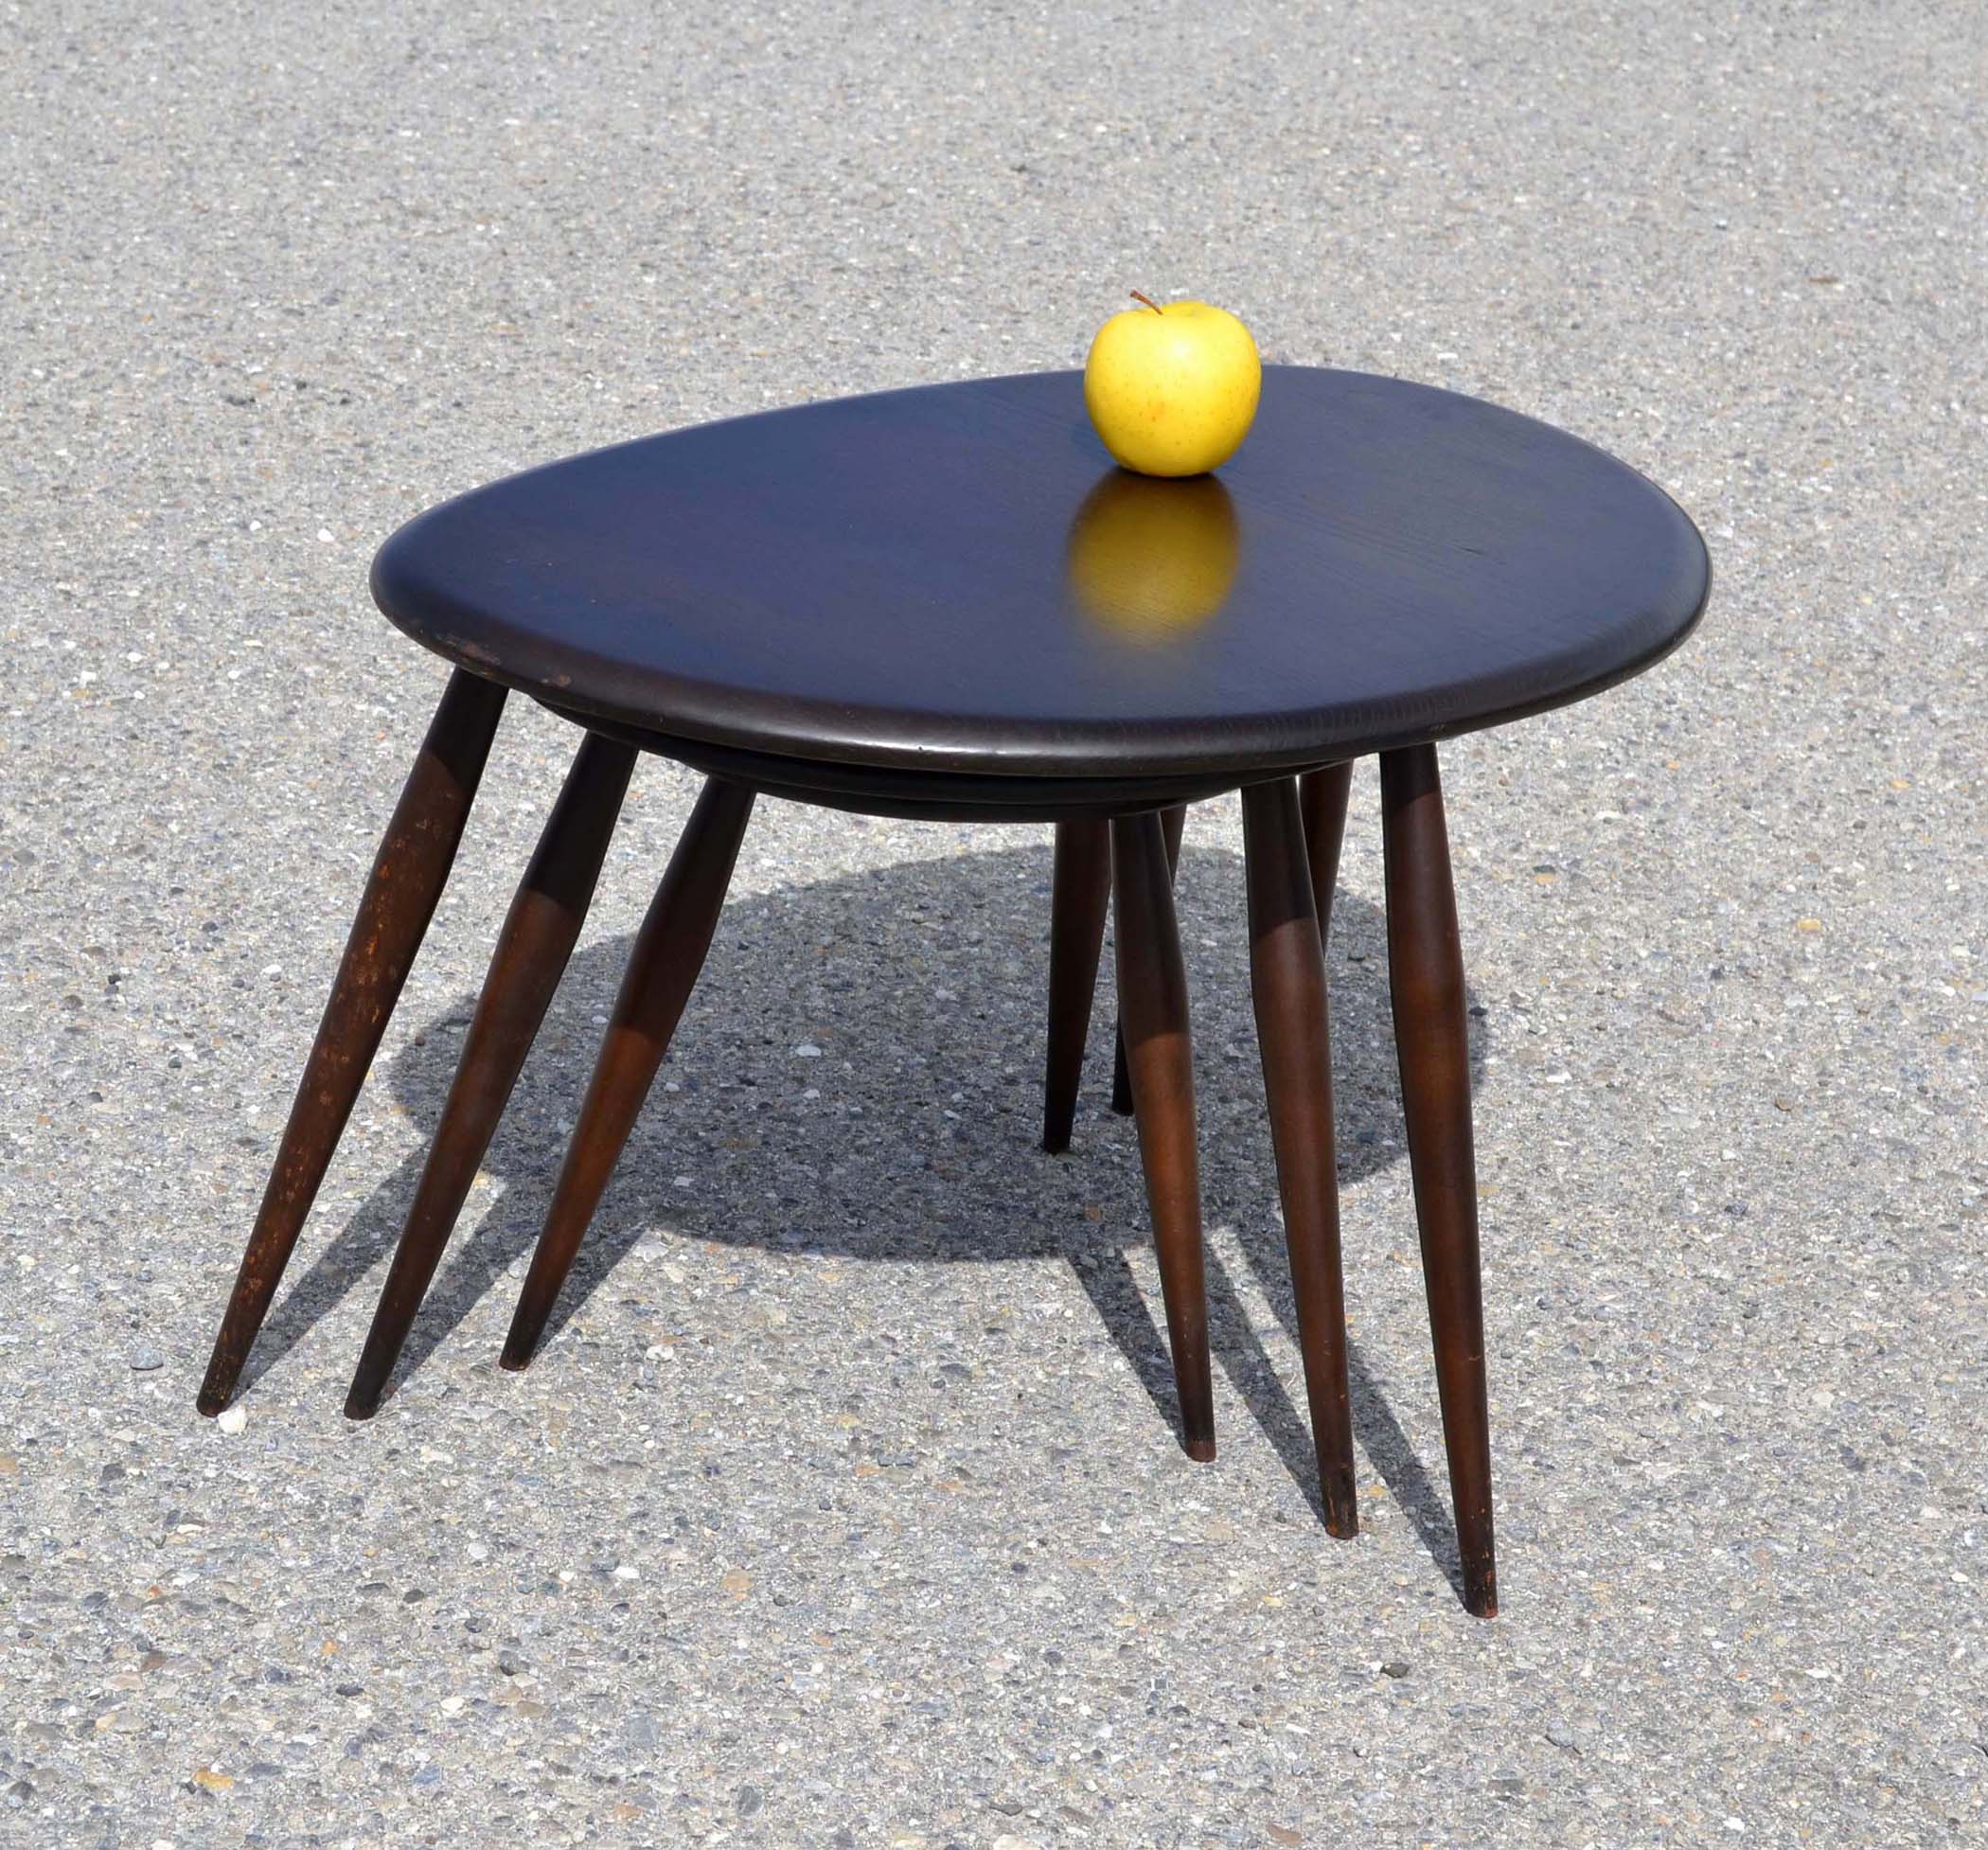 Mobilier design vintage vendu - Table basse violette ...